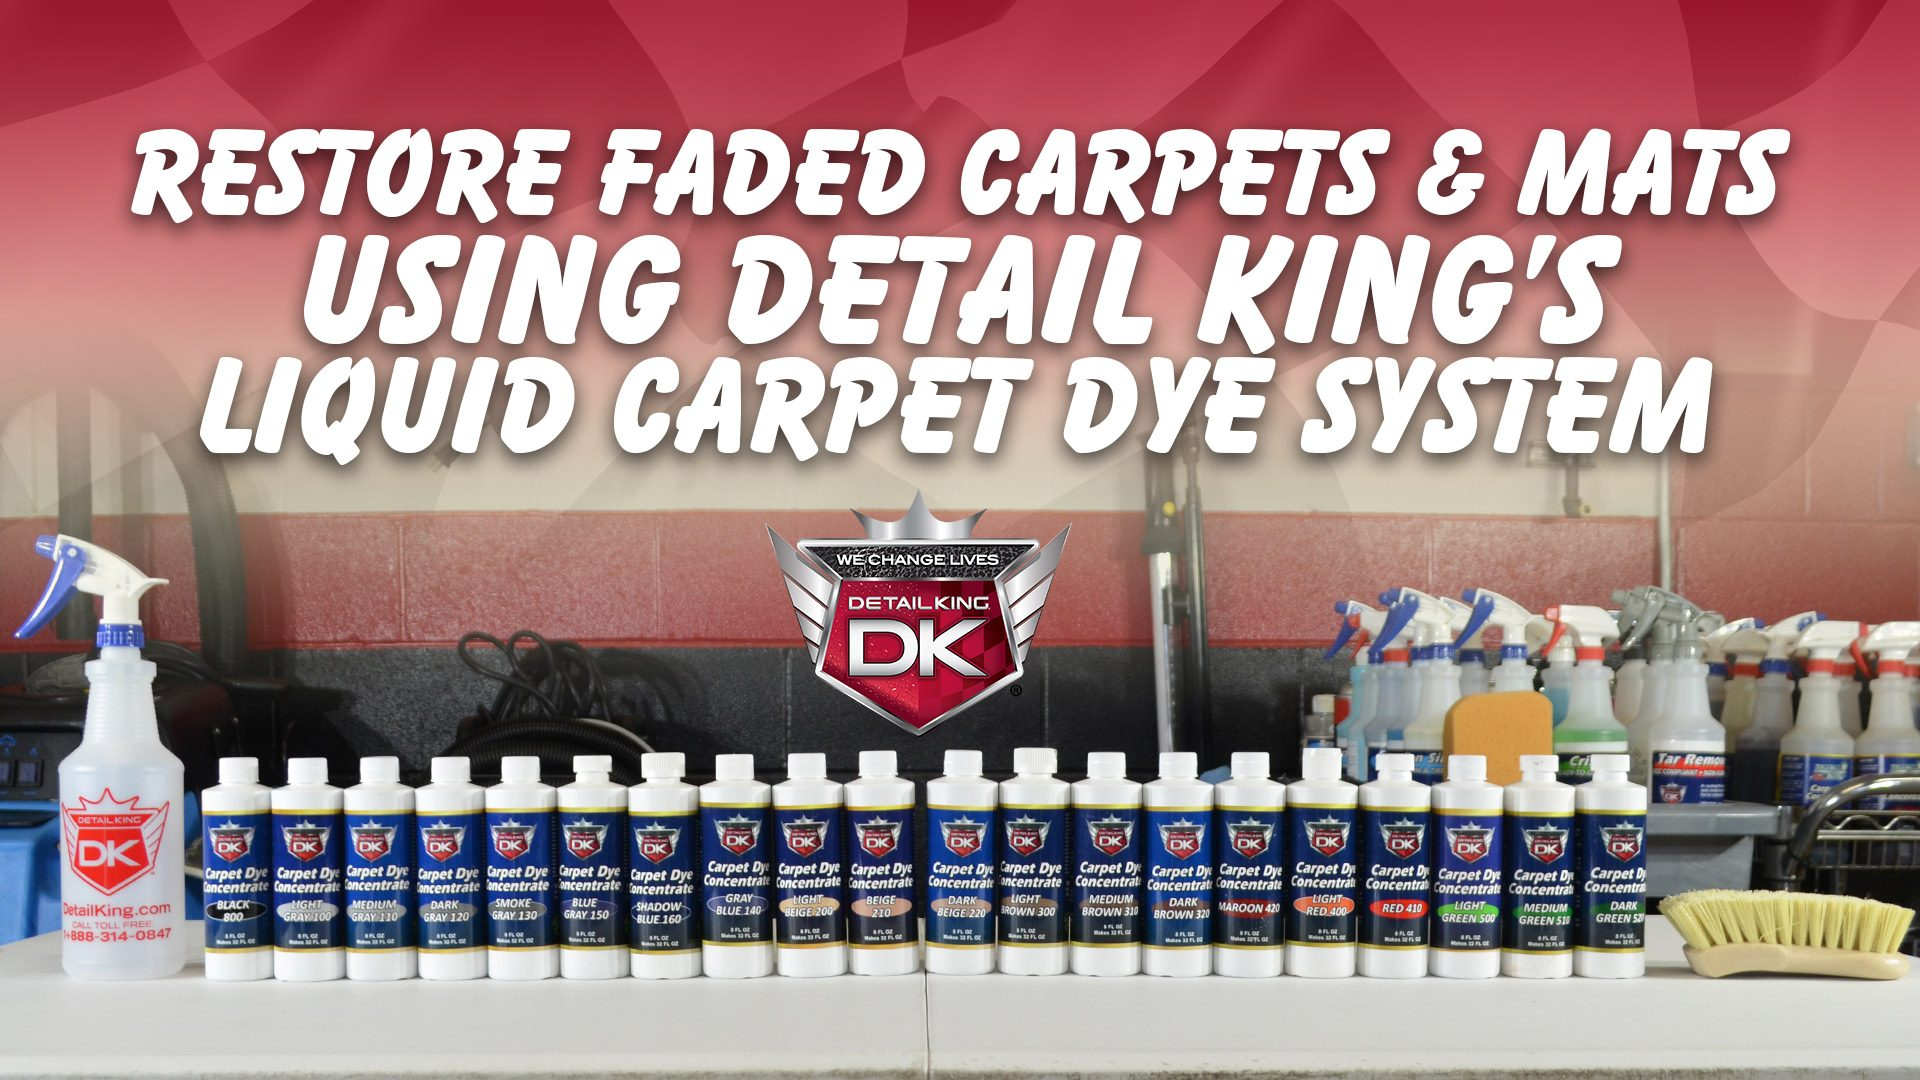 How To Restore Your Faded Carpets & Floor Mats – Detail King Liquid Carpet Dye System